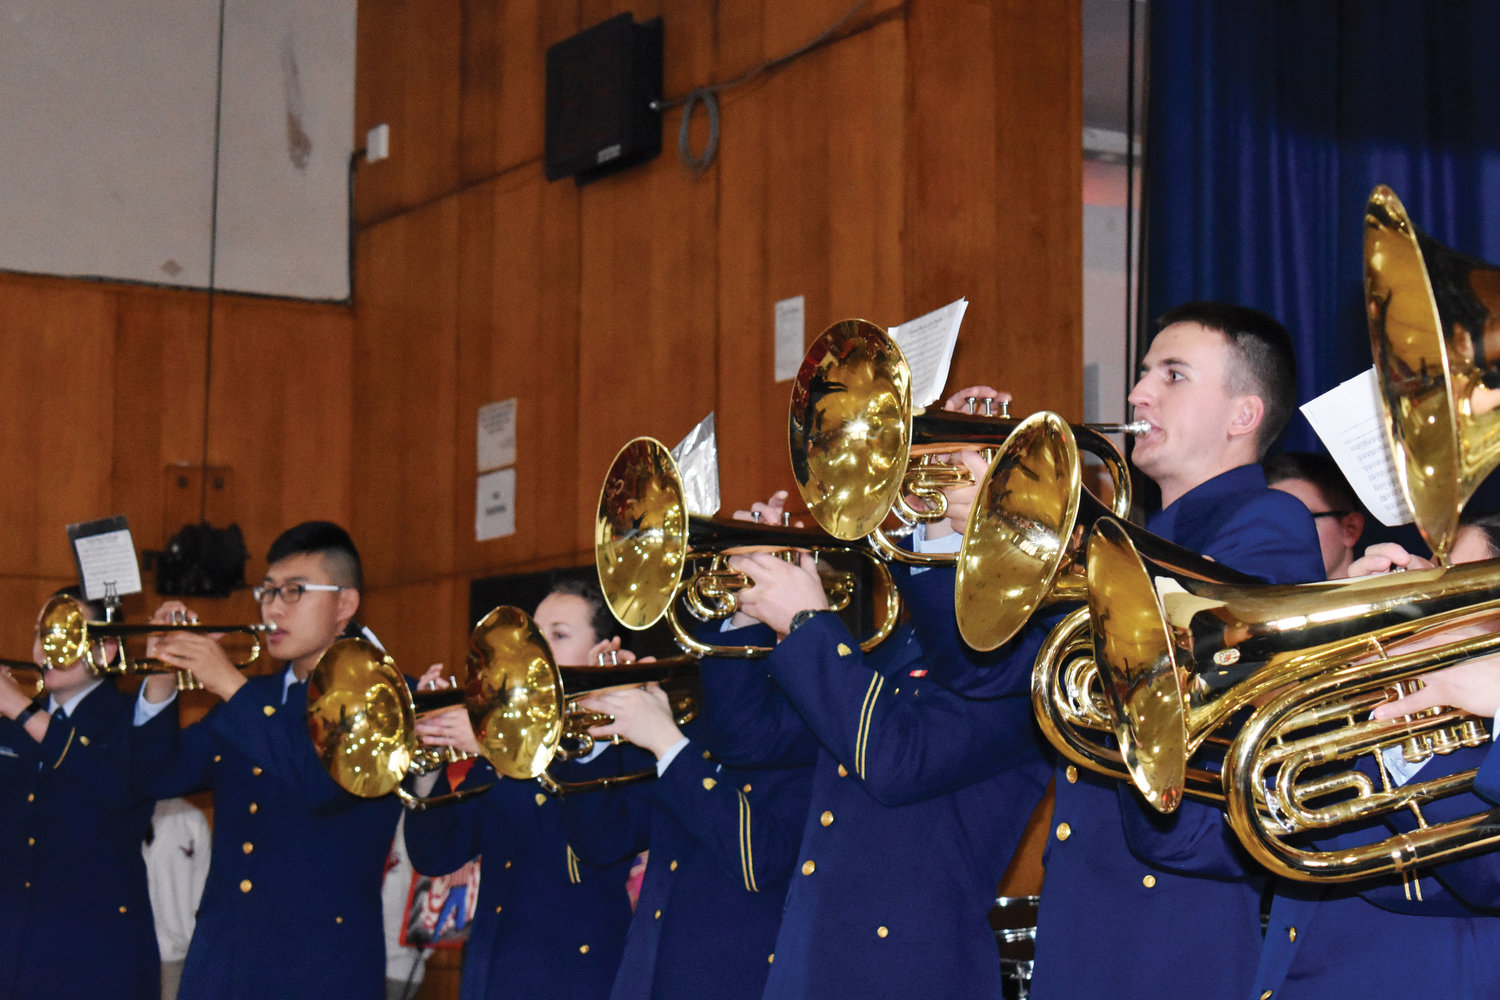 The U.S. Coast Guard Academy and Windjammers Drum and Bugle Corps perform.